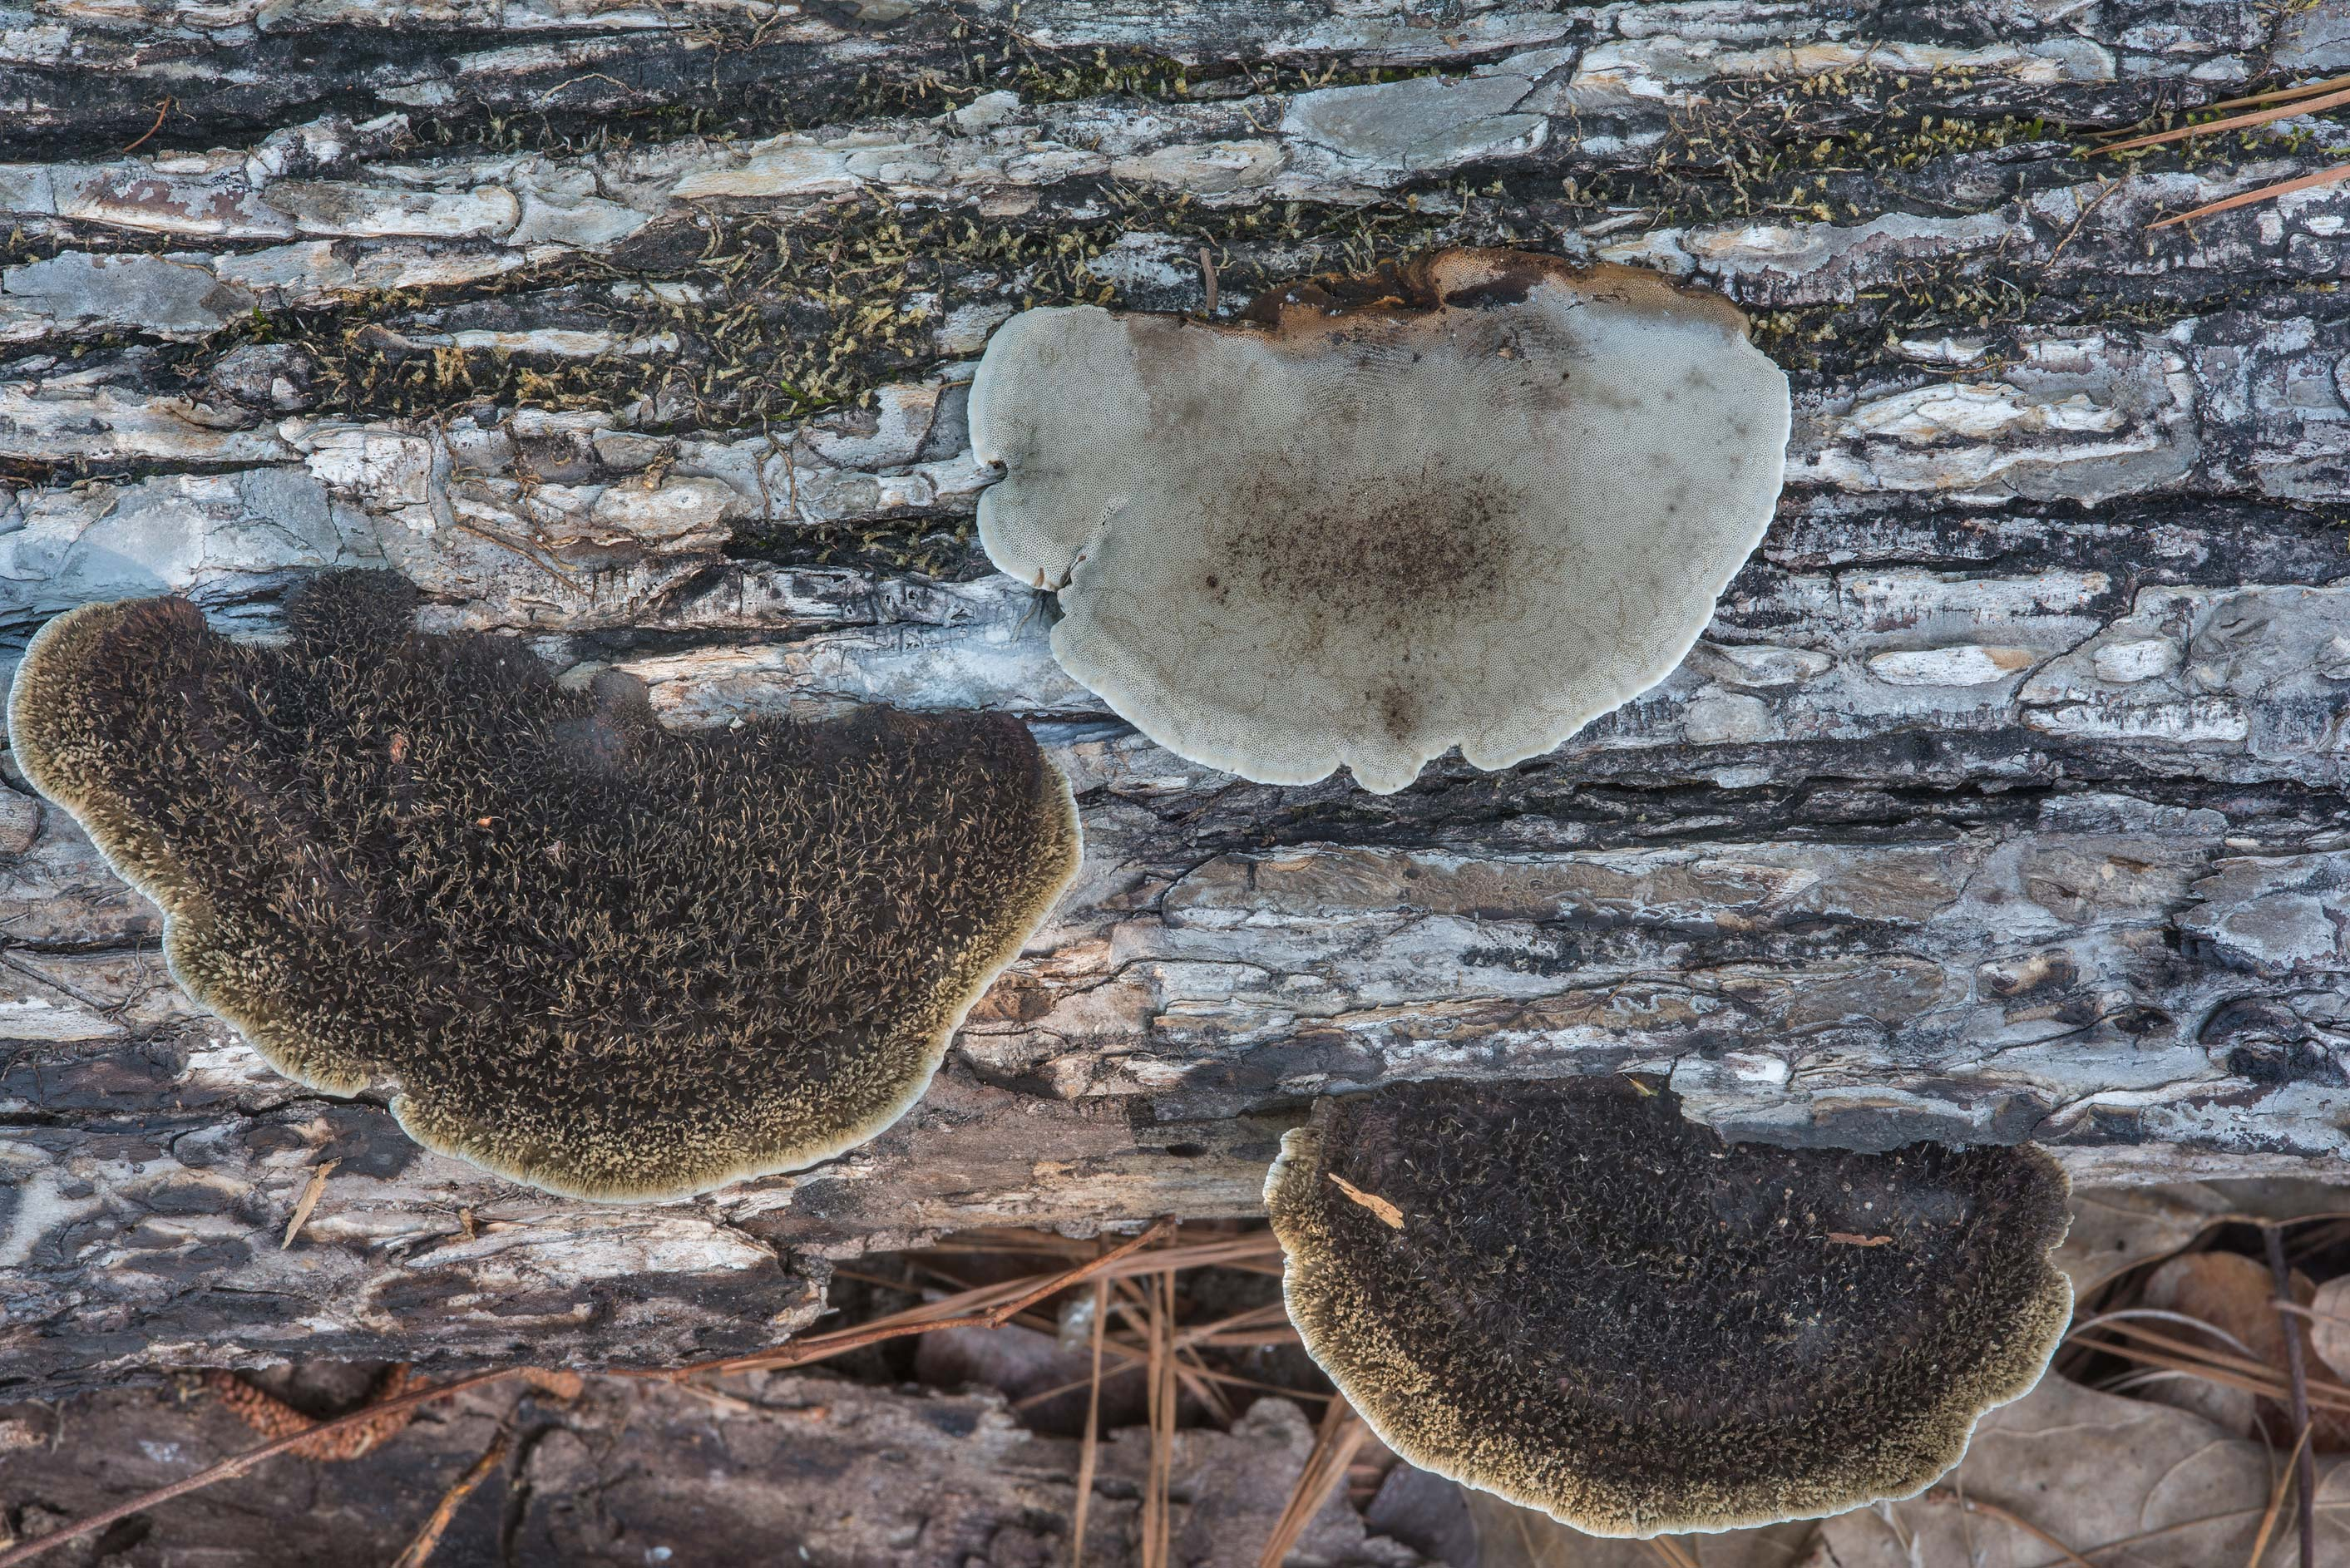 Hairy polypore mushrooms Hexagonia hydnoides on a...National Forest. Richards, Texas